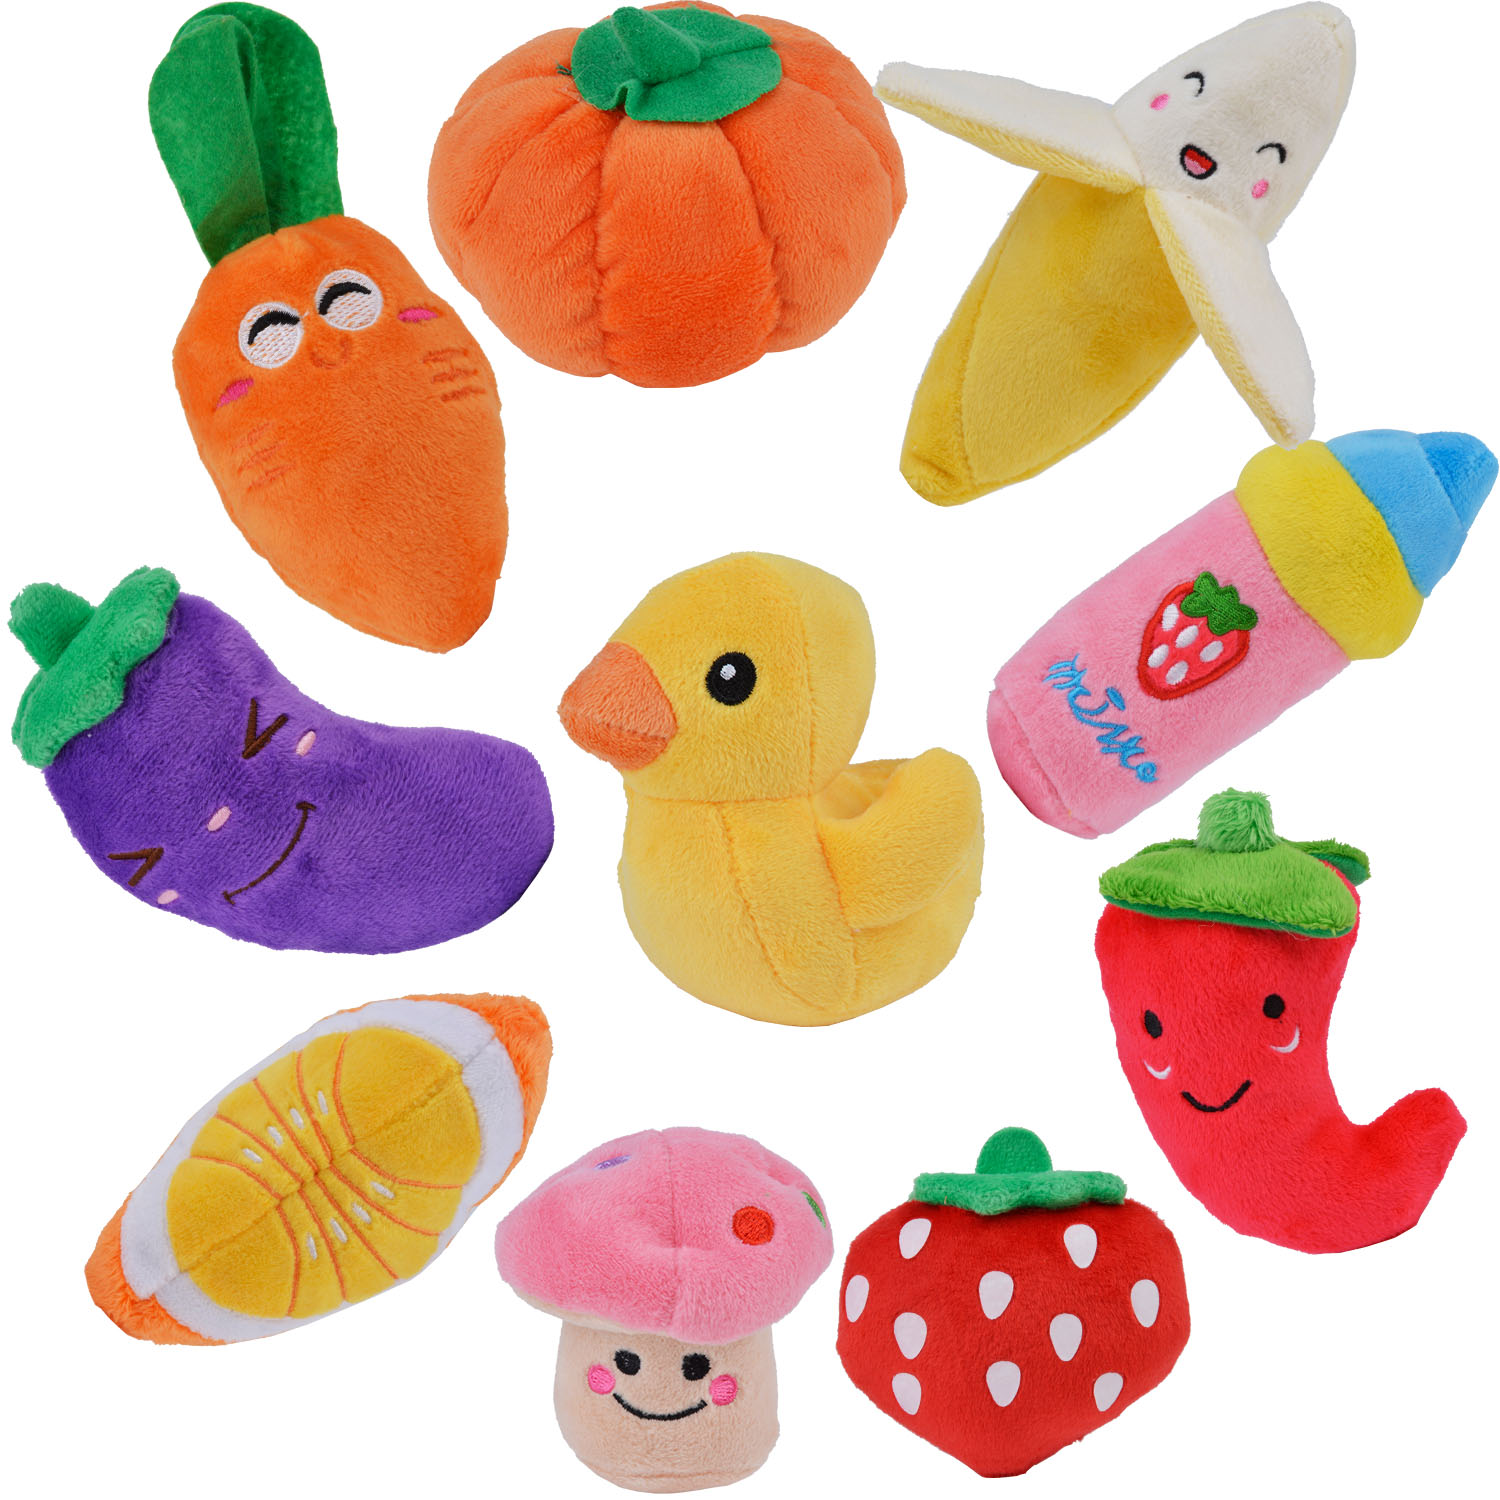 10Pcs Pet Squeaky Toys Vegetable Fruits Cartoon Sound Chew Plush Toy Pet Toys for Dogs Puppy in Dog Toys from Home Garden